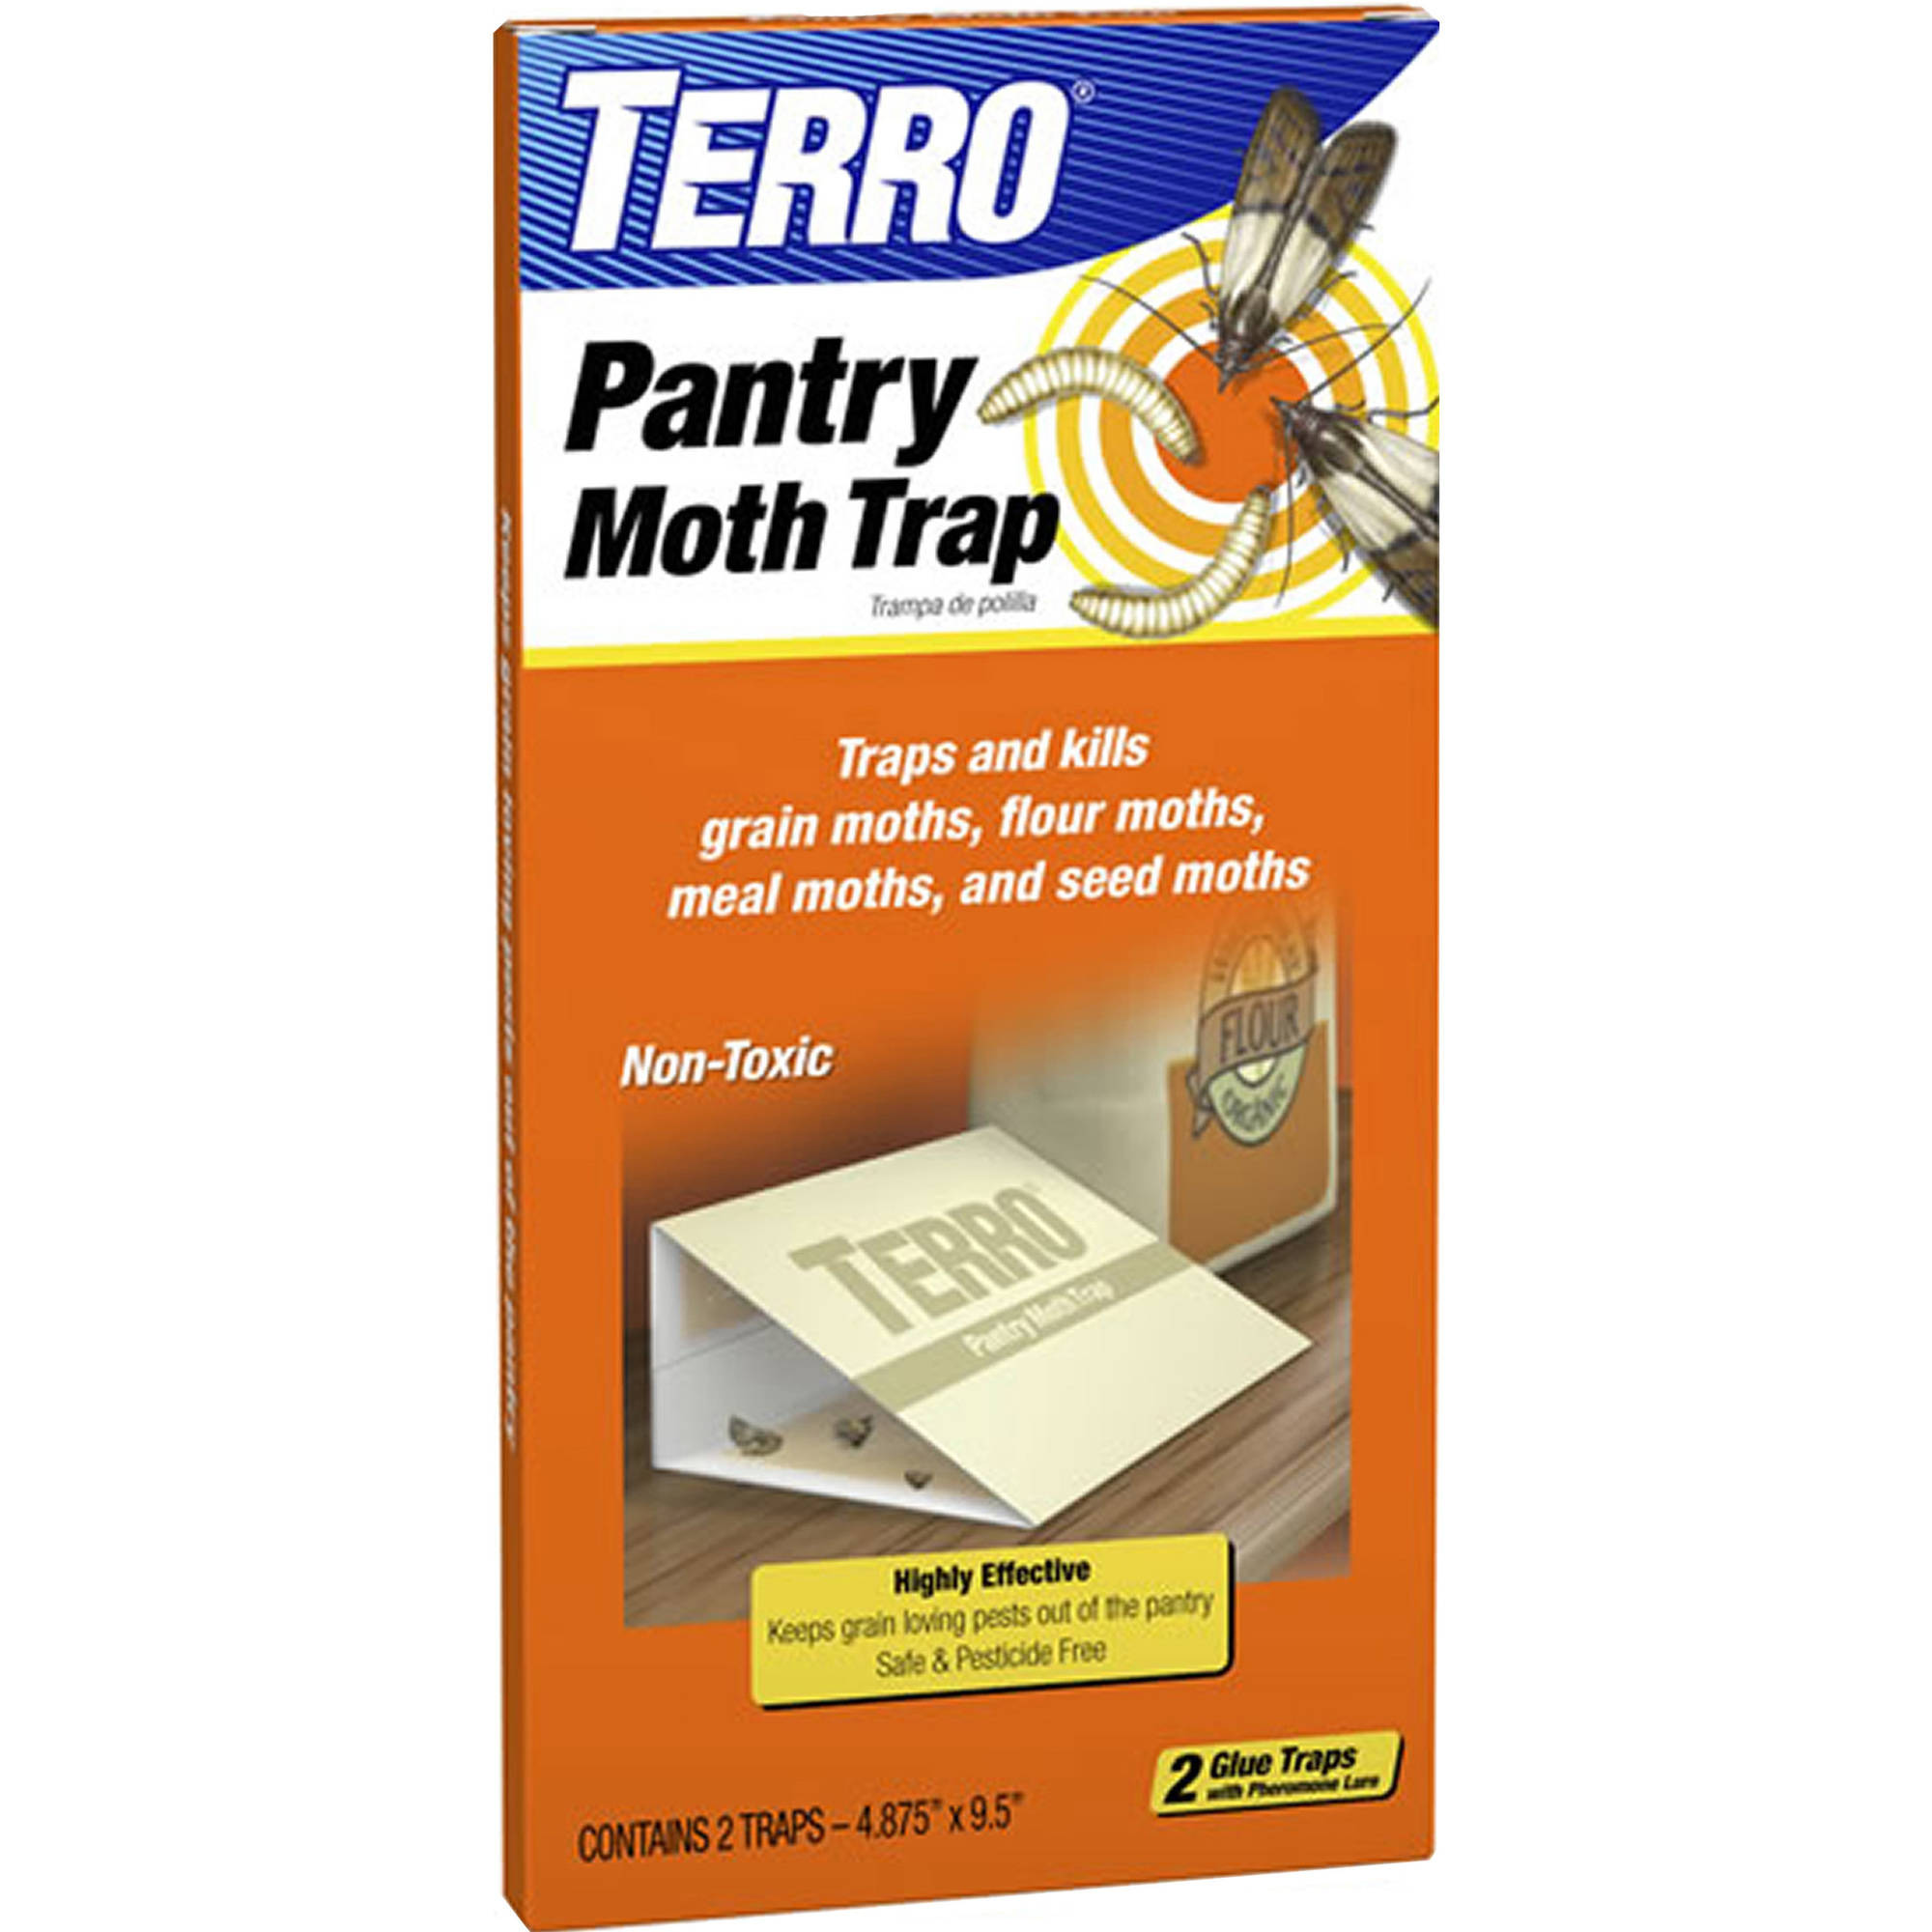 TERRO Pantry Moth Traps, 2 count